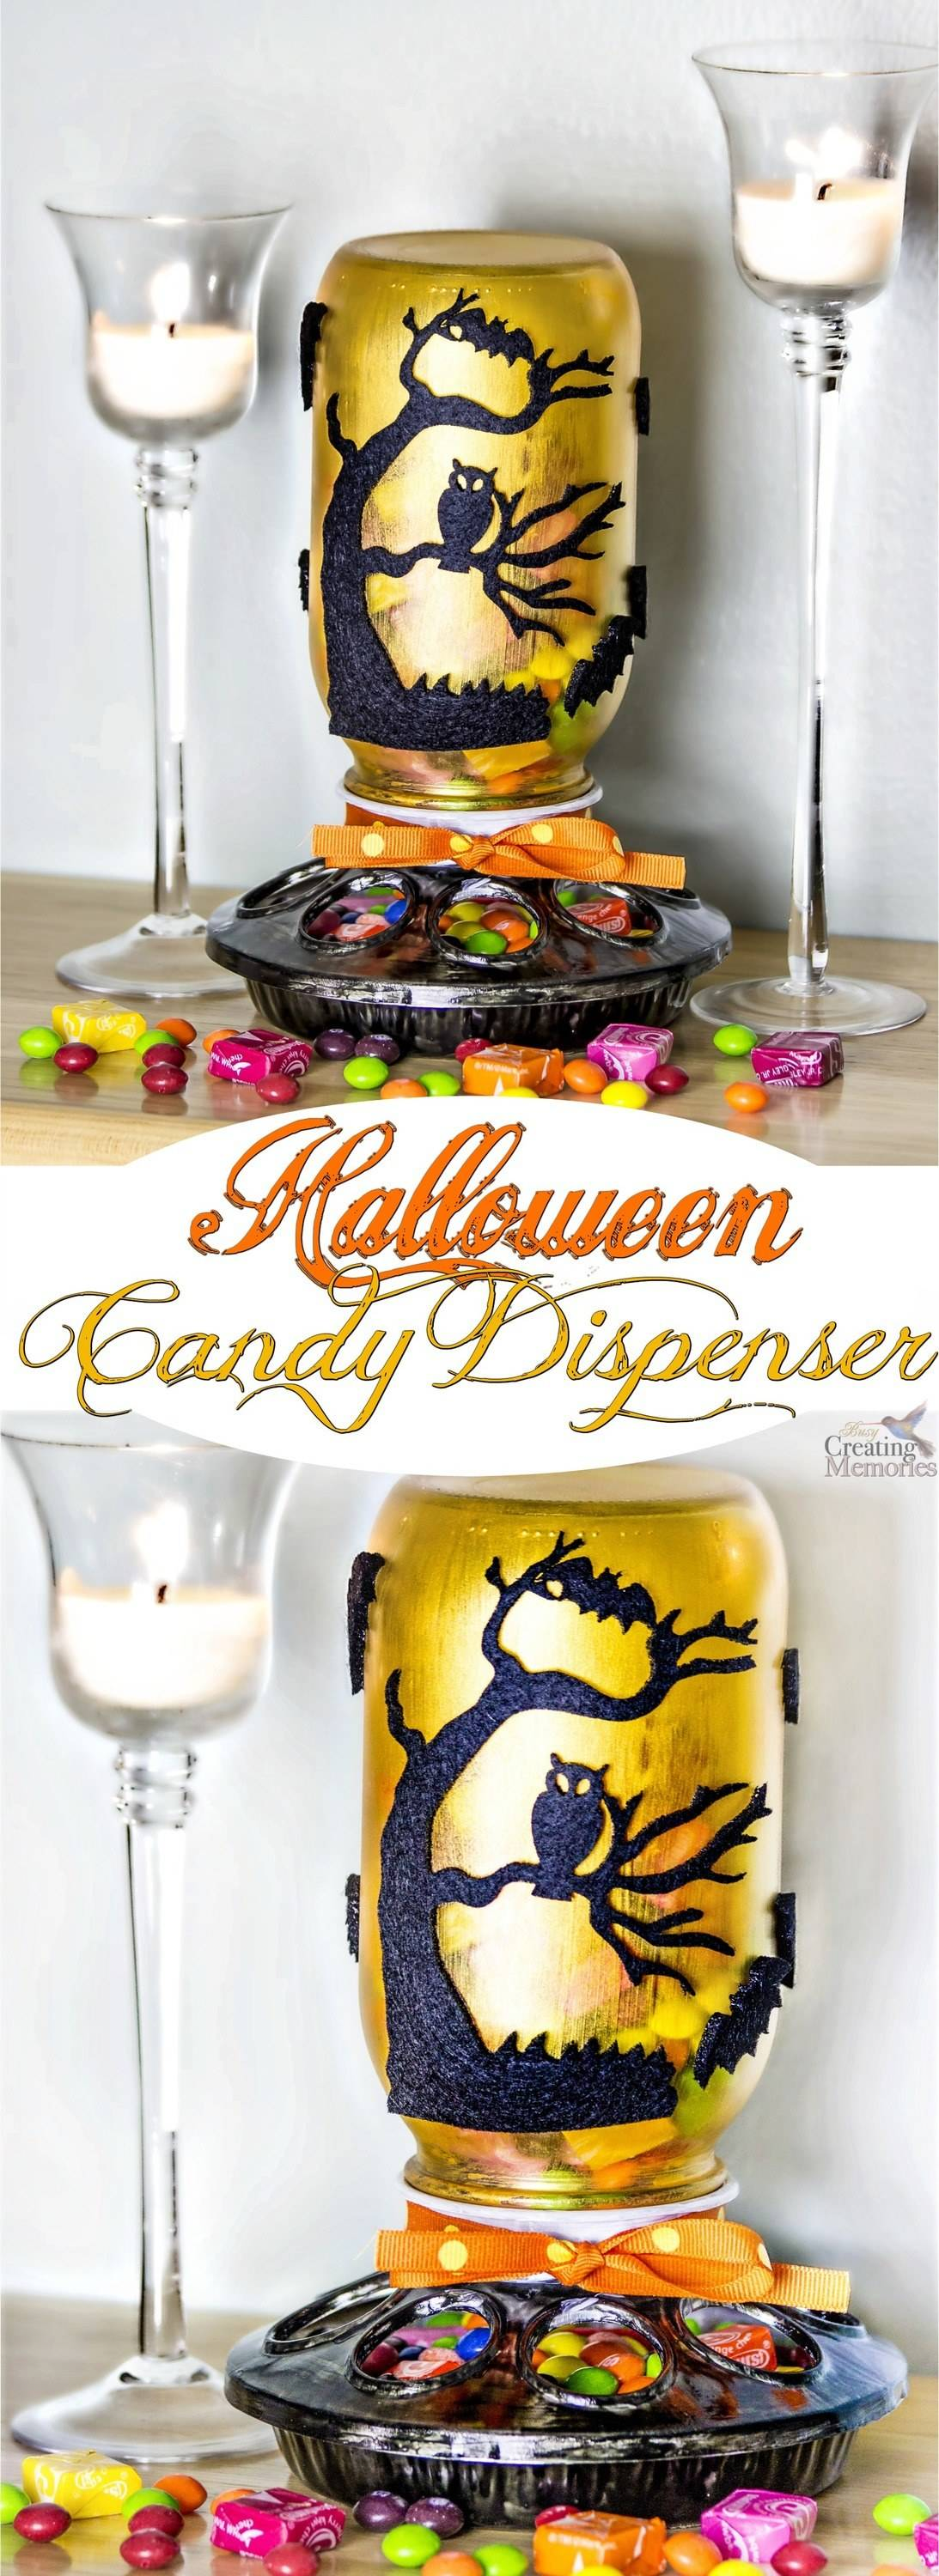 Don't settle for a boring Halloween Candy Dish! Share your holiday candy in this easy DIY Halloween Candy Dispenser! It makes picking up a treat fun for little fingers! Great for Teacher Gifts as well!